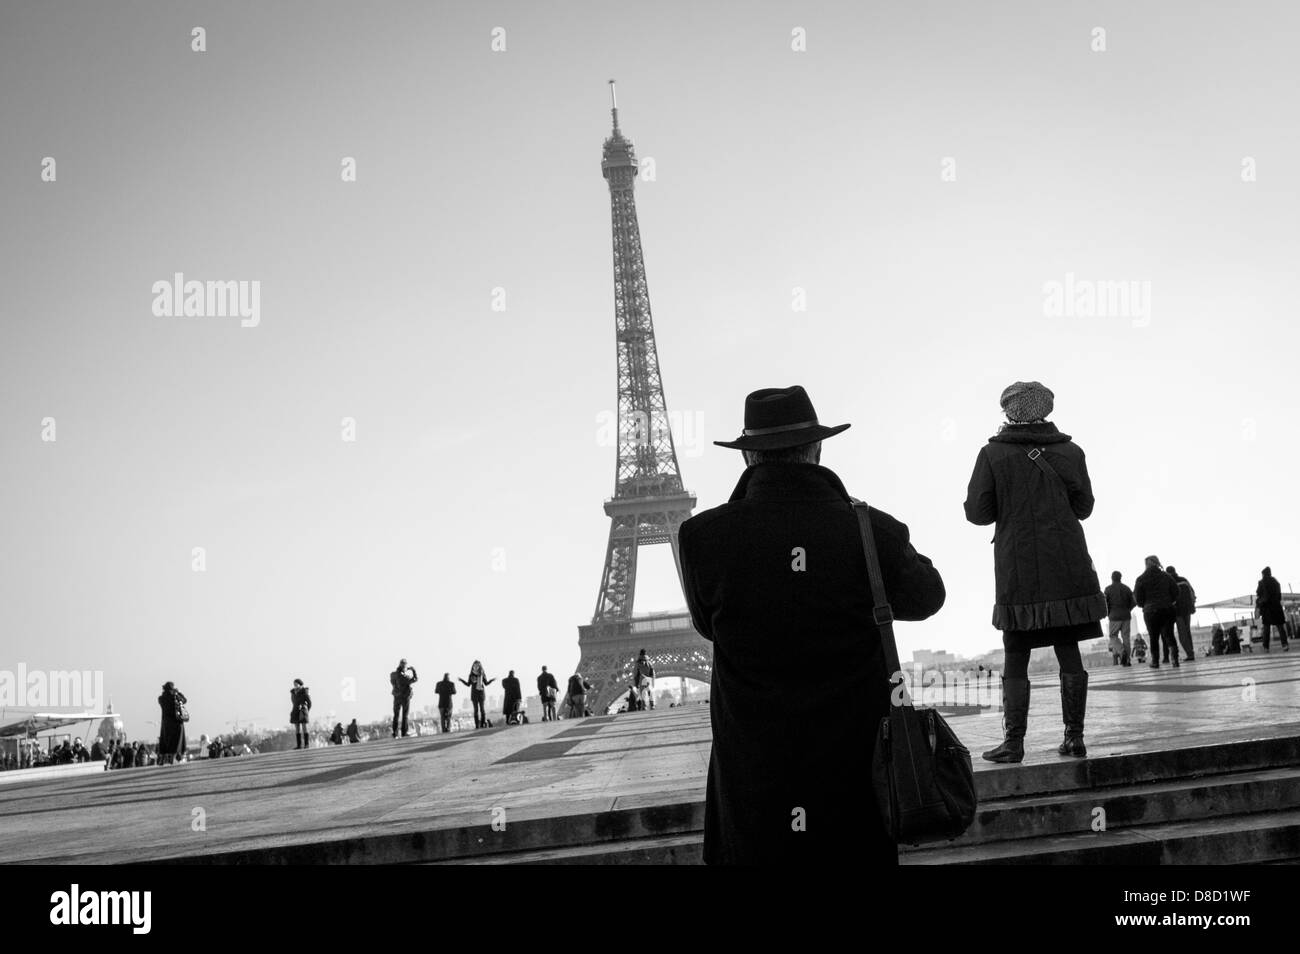 Tourists photographing The Eiffel Tower from Place du Trocadéro in Paris, France. - Stock Image